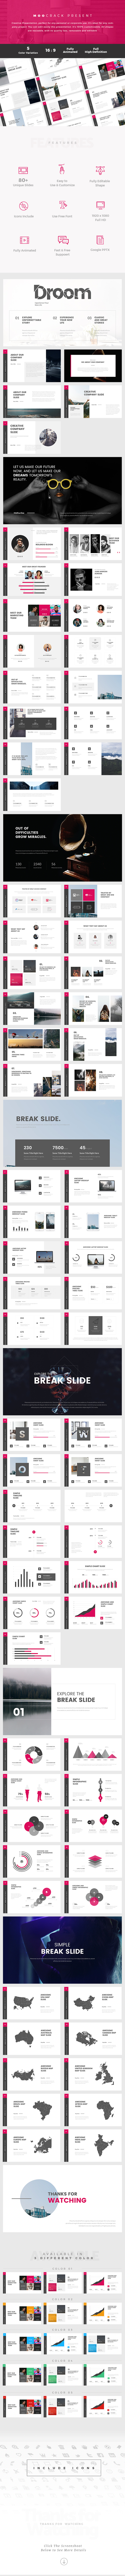 GraphicRiver Droom Creative & Minimal GoogleSlides Template 20957972